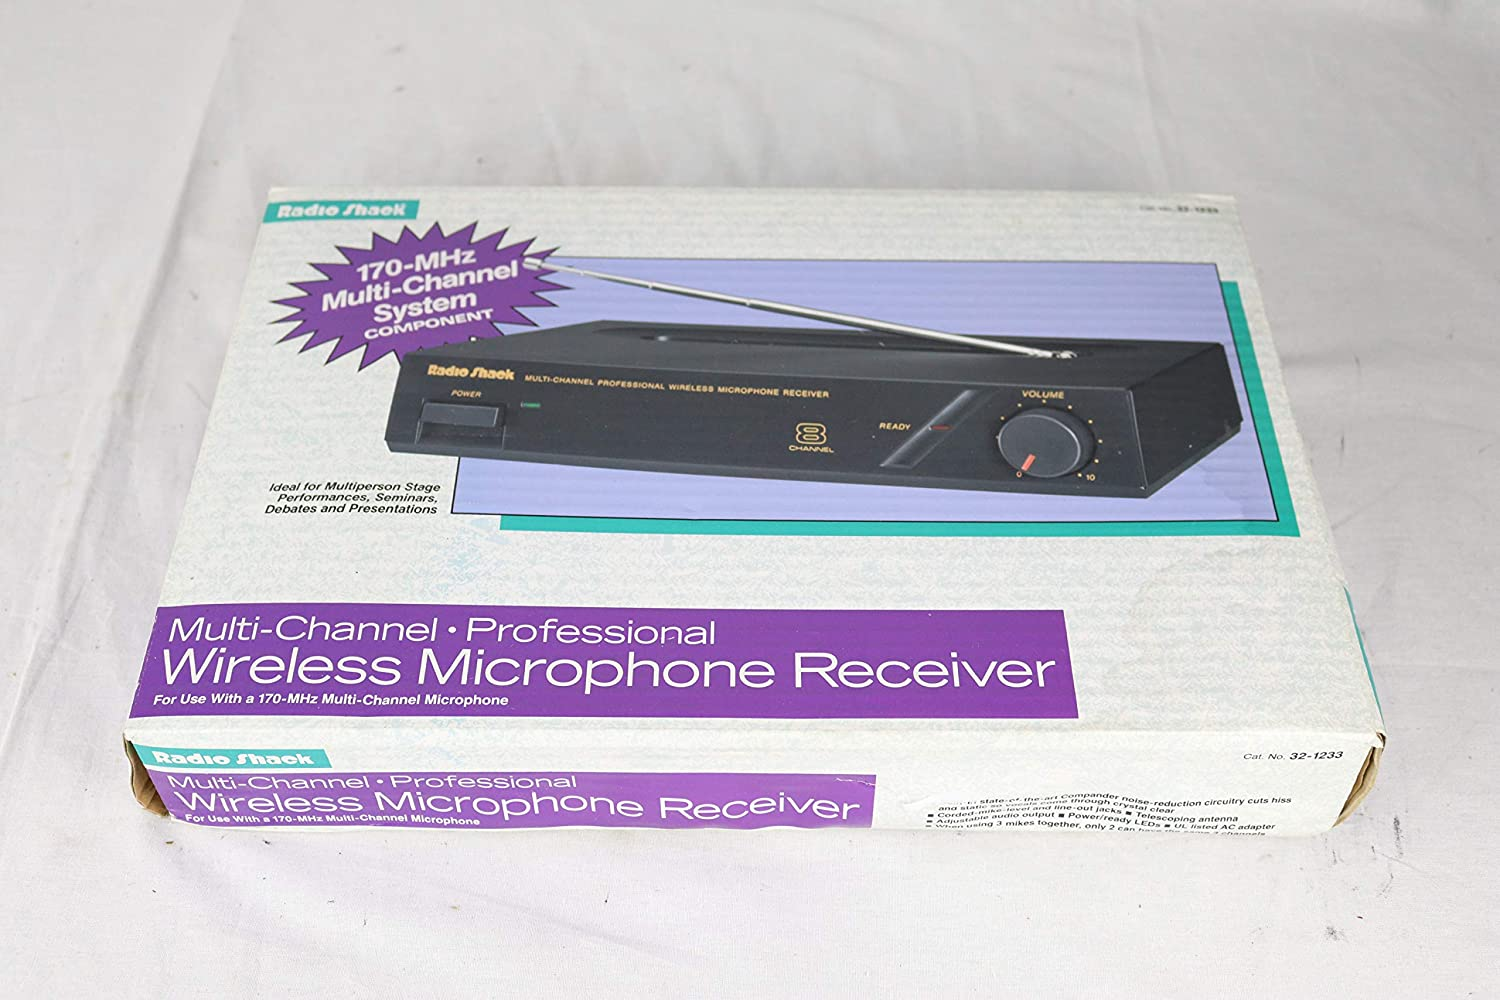 RADIO SHACK 32-1233 MULTI-CHANNEL PROFESSIONAL WIRELESS MICROPHONE RECEIVER T13770